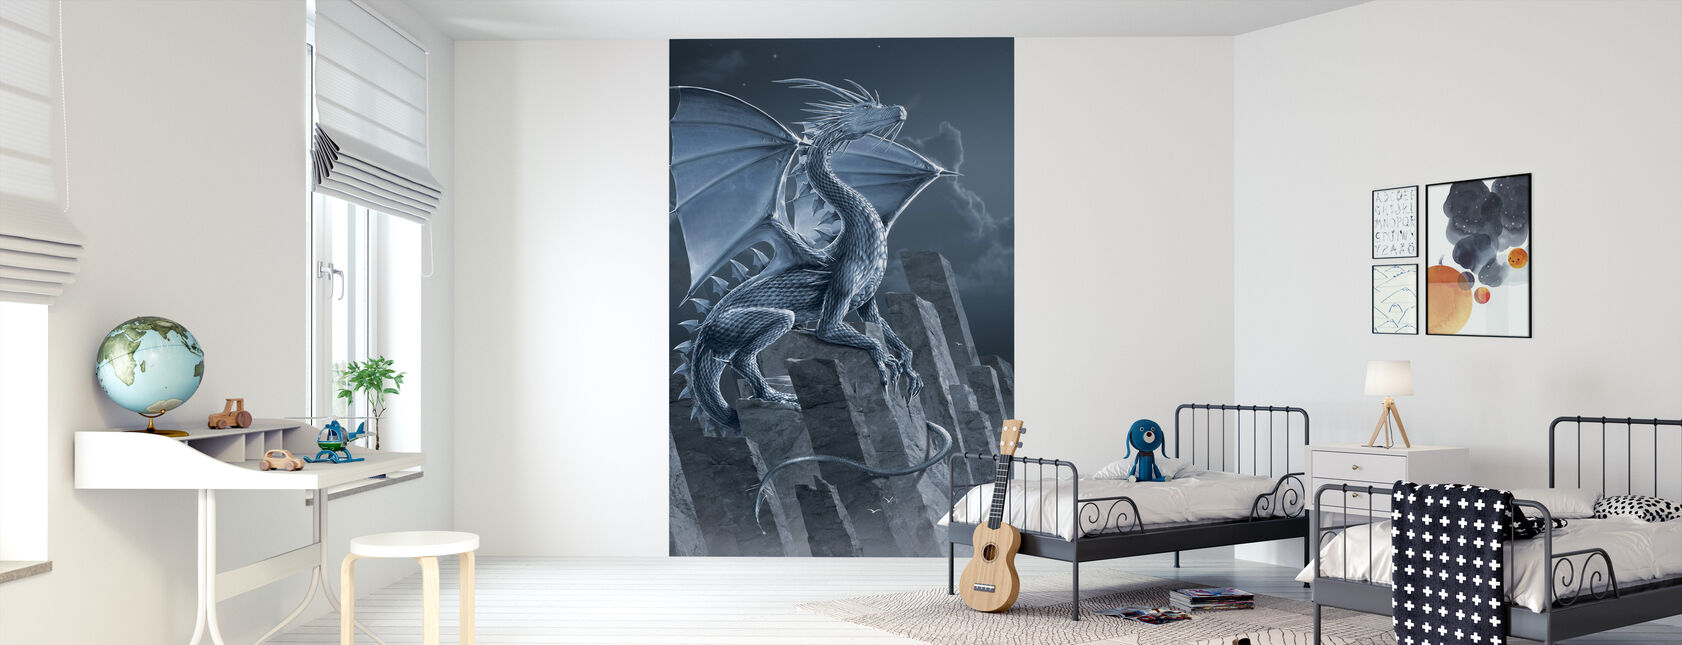 Silver Dragon - Wallpaper - Kids Room